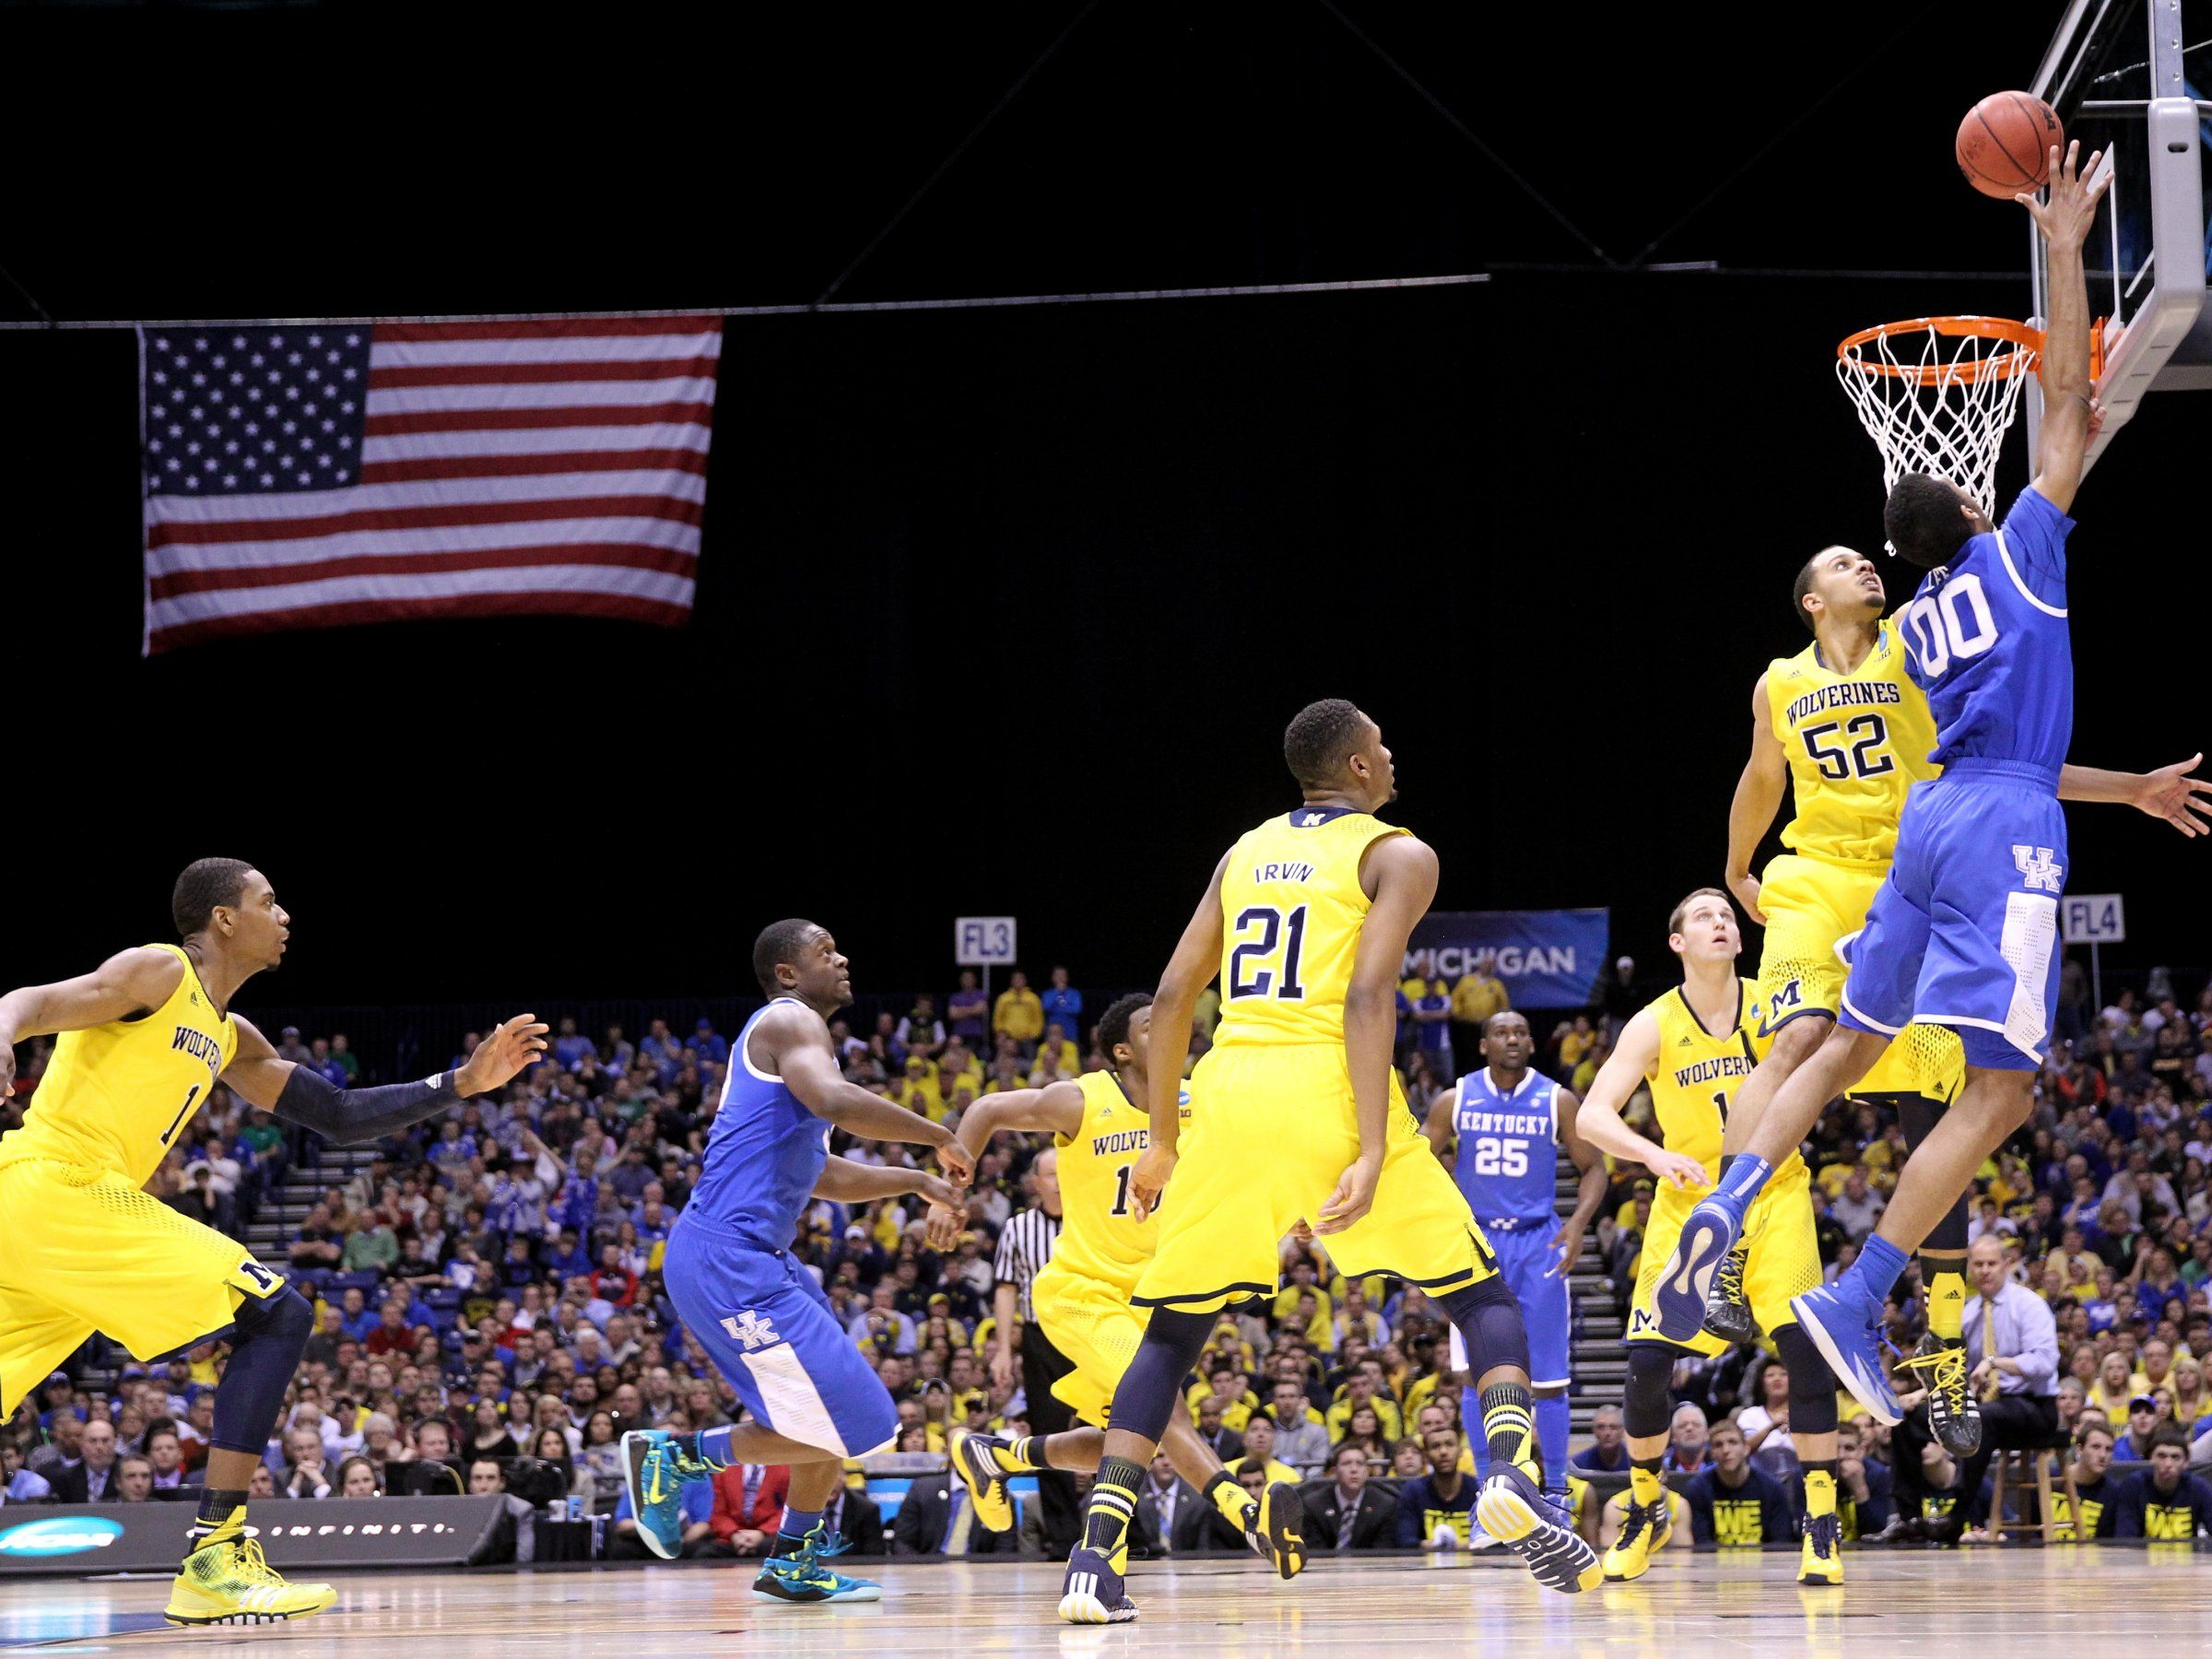 You can watch every game of March Madness absolutely free